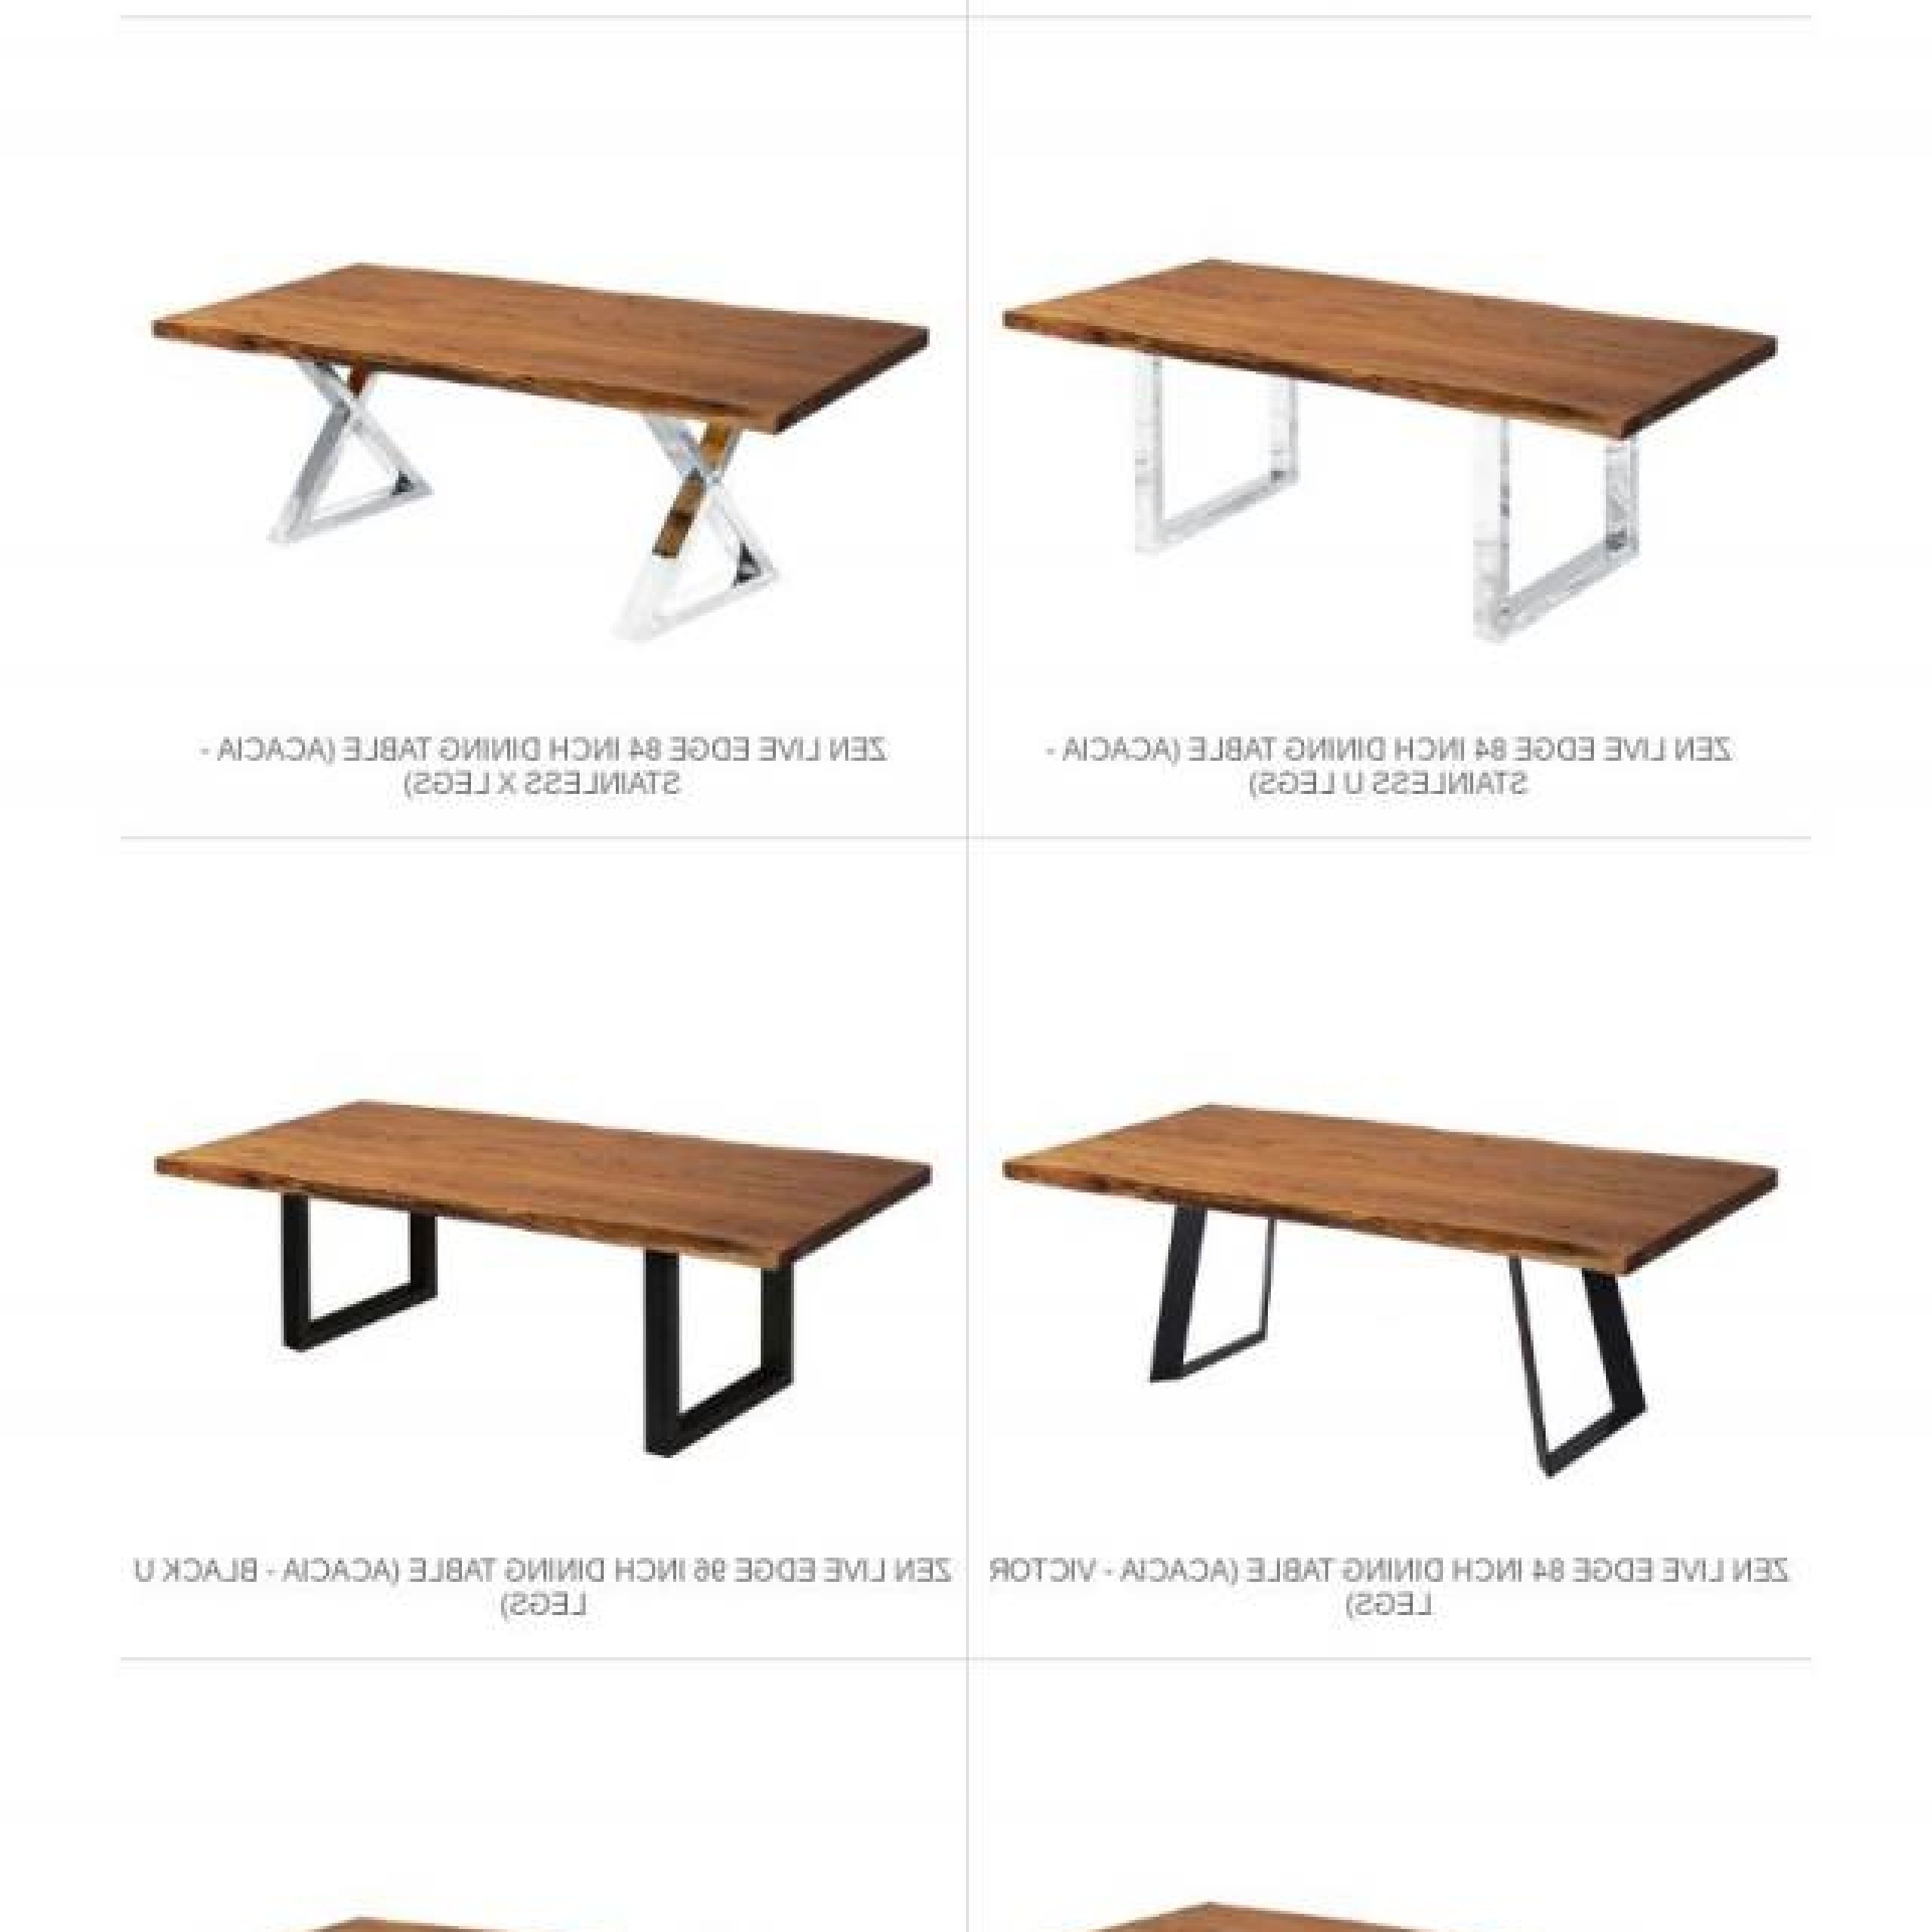 Acacia Dining Tables With Black Rocket Legs Within 2017 ▷ Zen Dining Tables Are Back In Stock! • Modern Furniture (View 6 of 30)